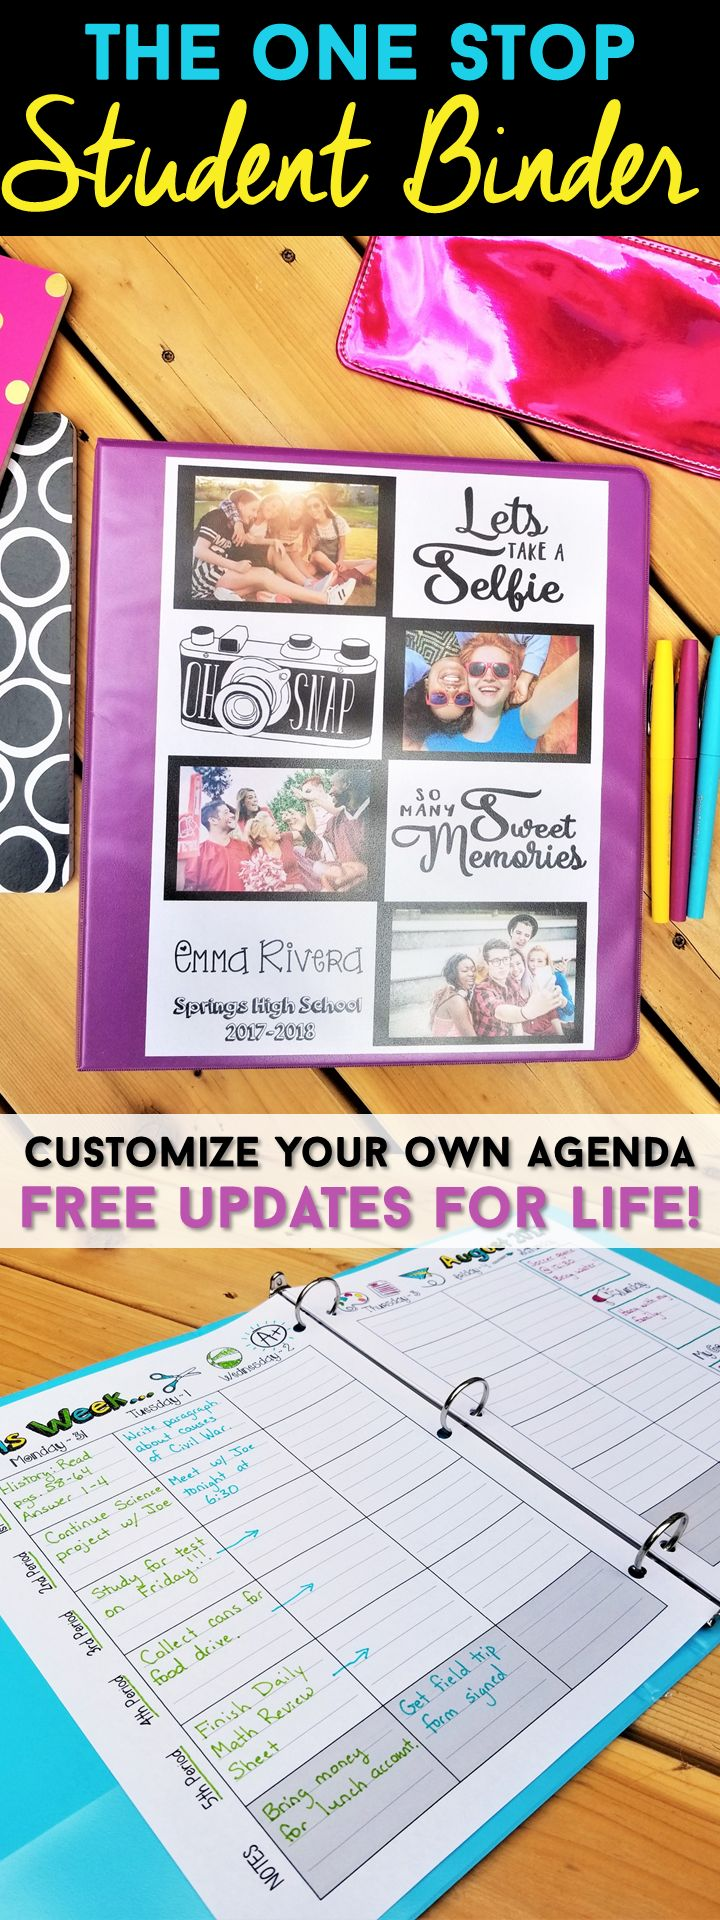 Student Binder Organization at its BEST! The One Stop Student Binder is a Student Agenda, Student Organizer, Student Planner that will keep students of ANY age organized! Filled with Weekly Agenda Pages, Calendars, Fun and Useful Forms, and so much more! Customize a Cover for ANY theme! FREE Updates for Life! | Student Planner | Student Agenda | High School Student Planner | Middle School Student Planner | Elementary Student Planner | Student Binder Organization